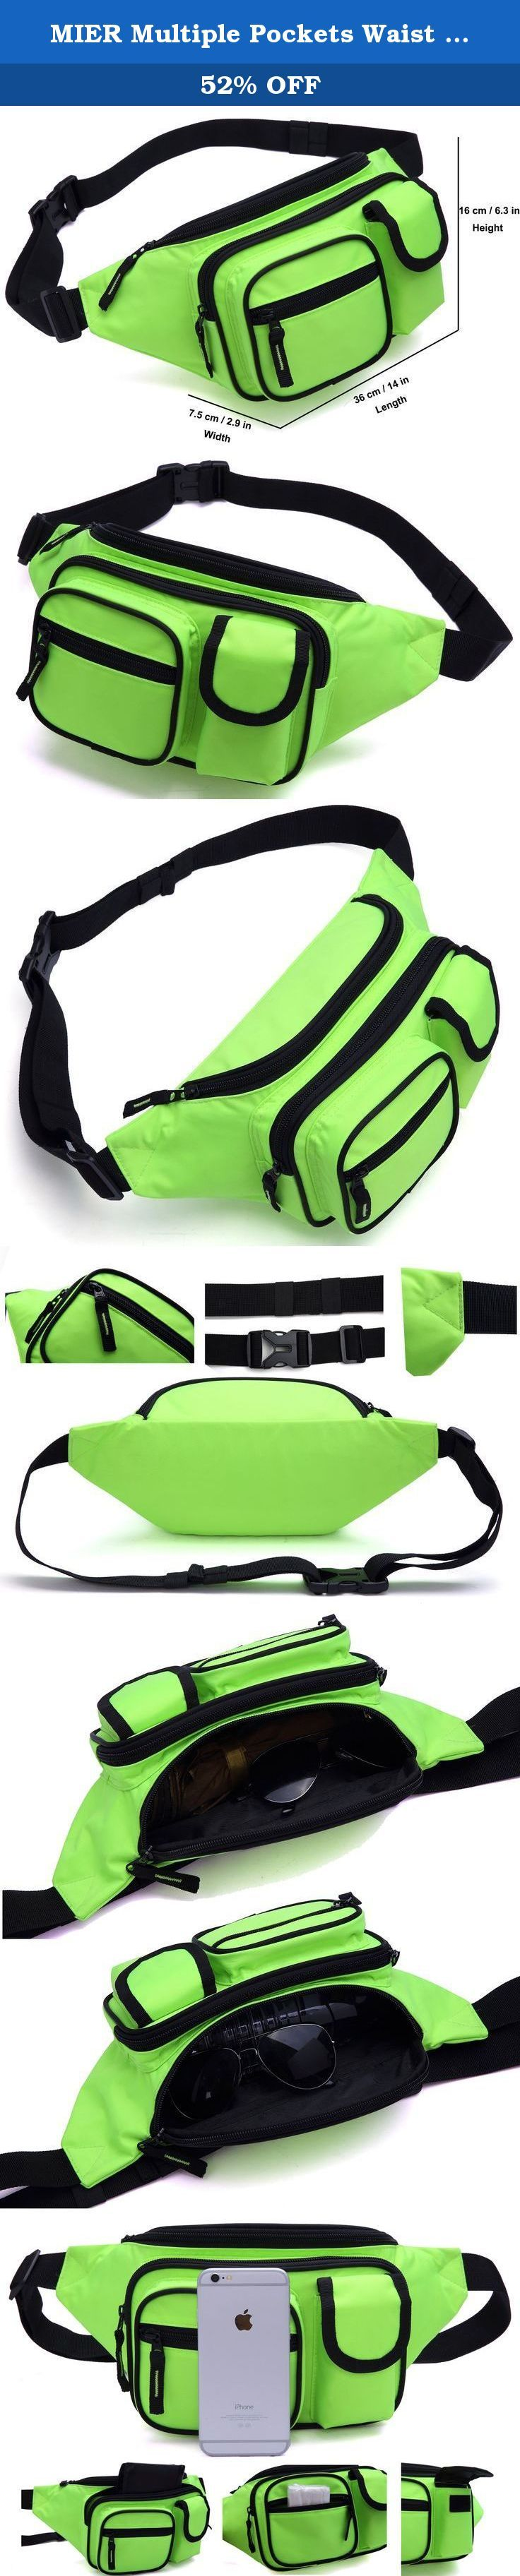 "MIER Multiple Pockets Waist Tool Gear Bag Outdoor & Sports Unisex Waist Fanny Pack Travel Shoulder Bag, Green. Features: A Hip Belt Pouch could keep your personal effects safety and handy during your journey. It is a ROOMY CUTE fanny pack, Durable and Lightweight, zipper is high quality made and more smoothly than ordinary zipper. So enjoy your trip with MIER WAIST BAG Why Choose MIER Fanny Pack? 1. Famous brand zipper ""SBS"" be used for all MIER Bags, which is more smooth and durable than..."